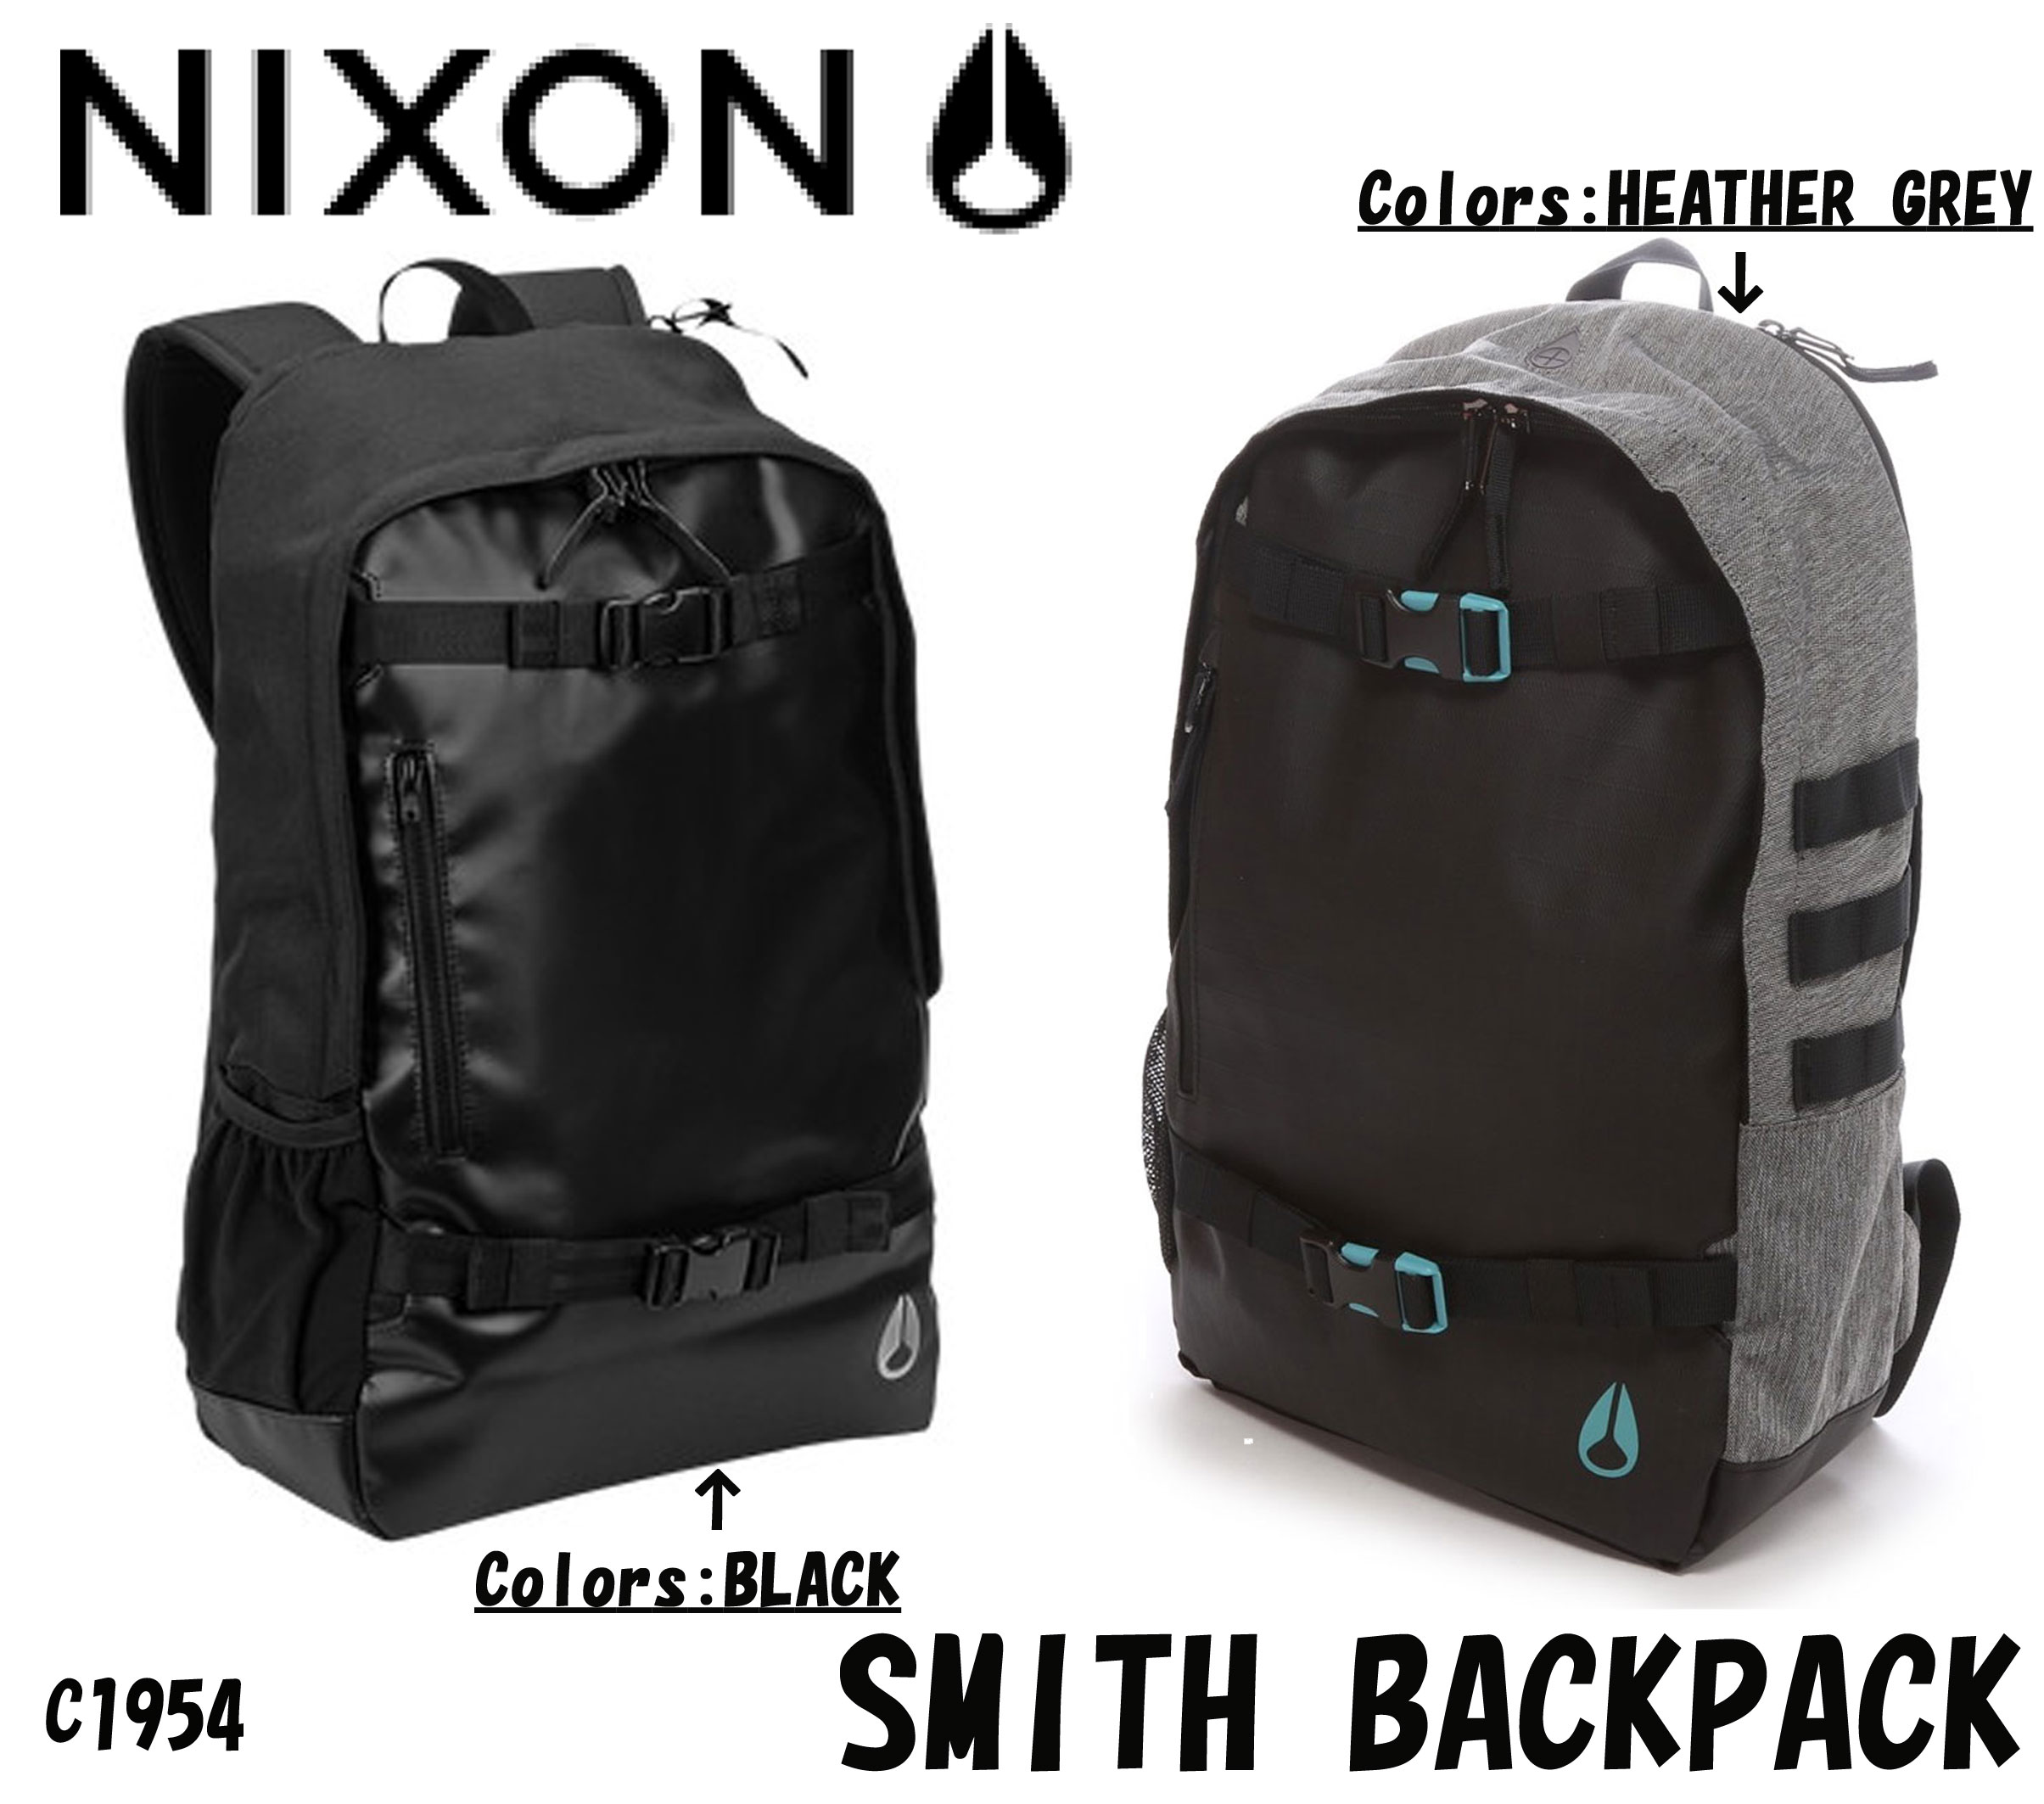 nixon_backpack_smith2_new2_mein13